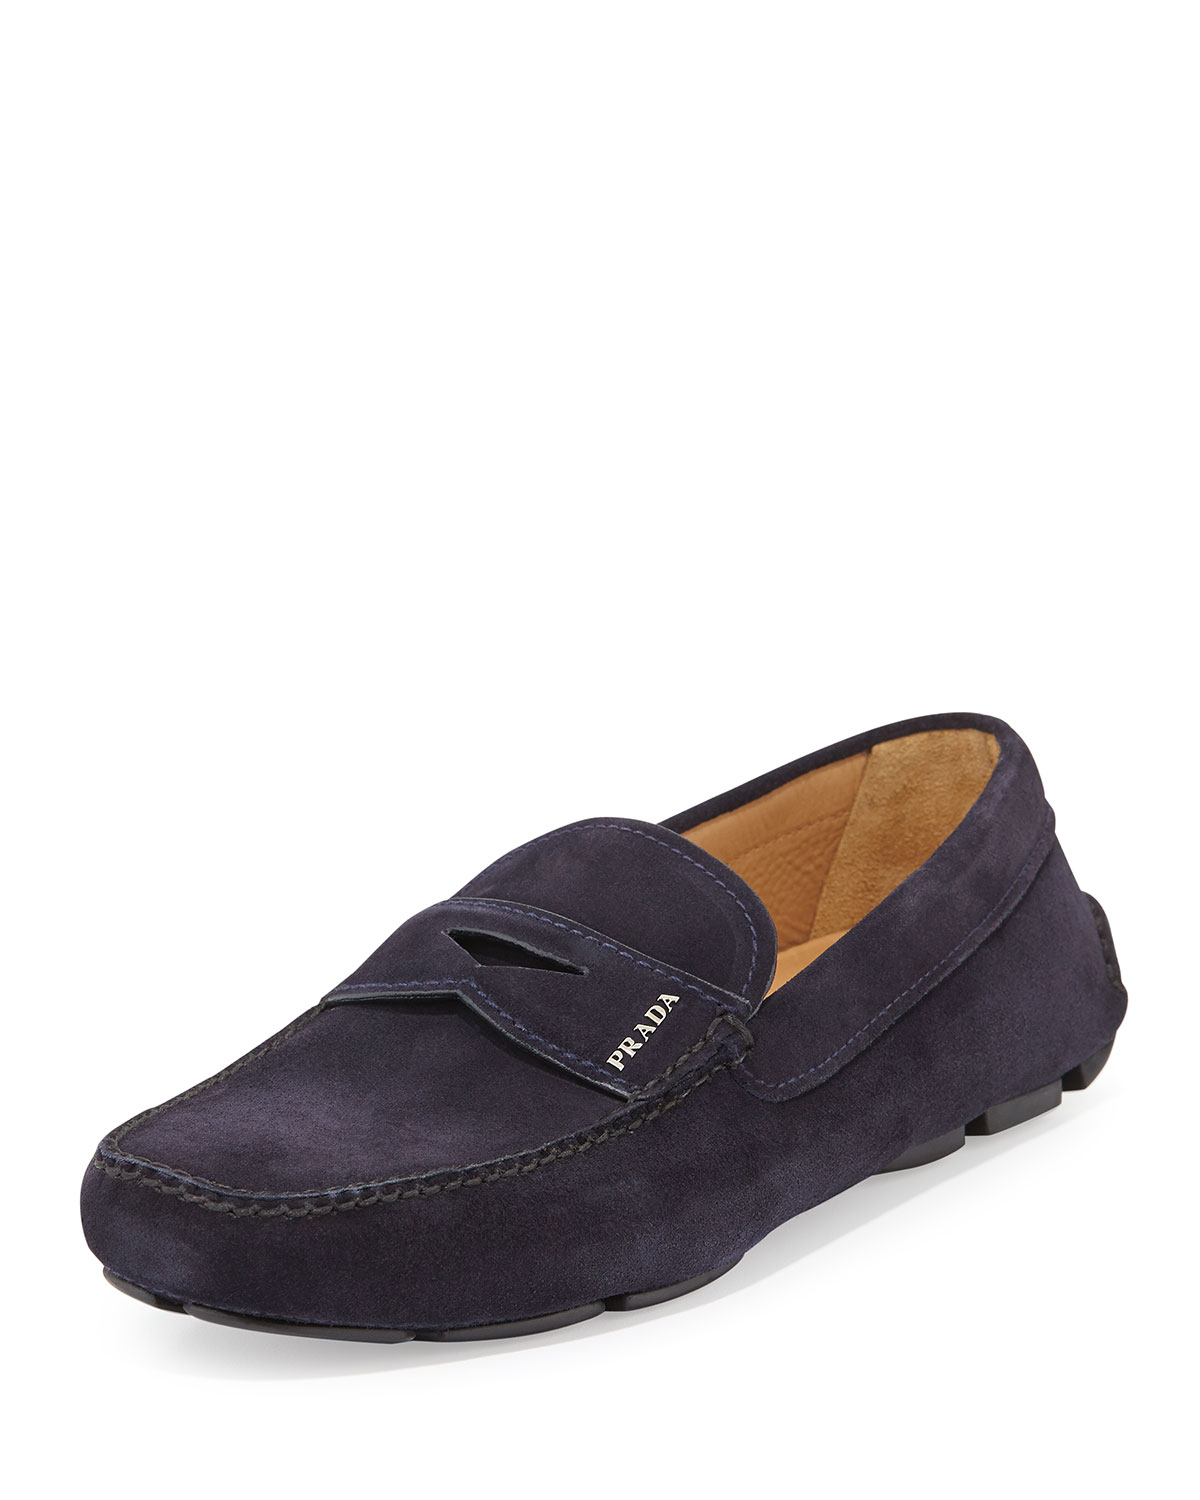 ddc56ad2c29 ... best lyst prada suede penny driver shoe in blue for men 52d27 f8881